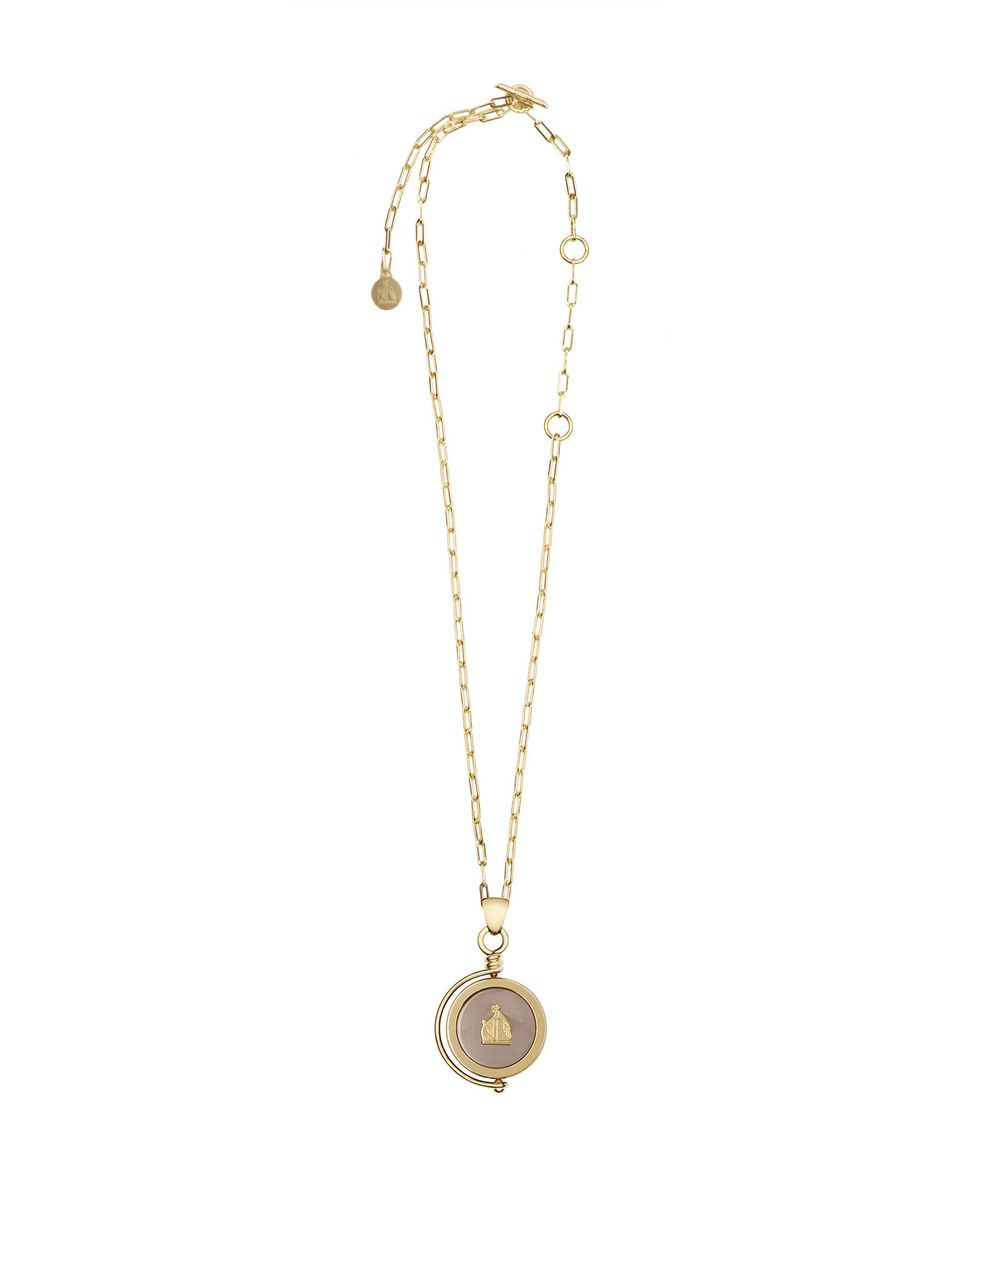 MOTHER AND CHILD NECKLACE - Lanvin